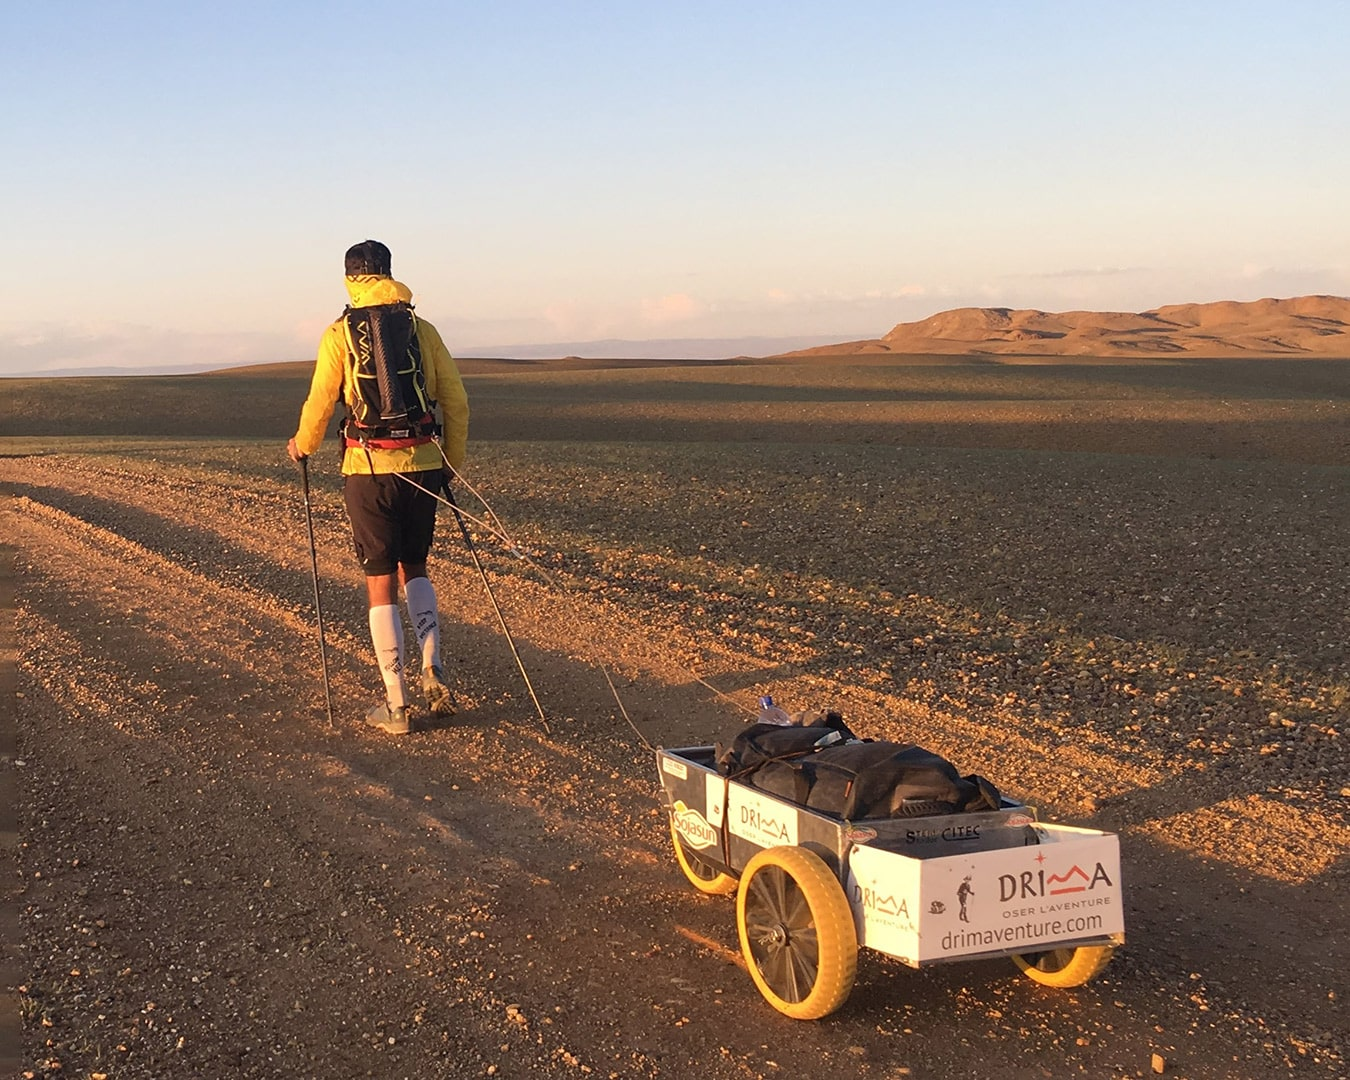 Max crossing walking the Gobi desert in Mongolia